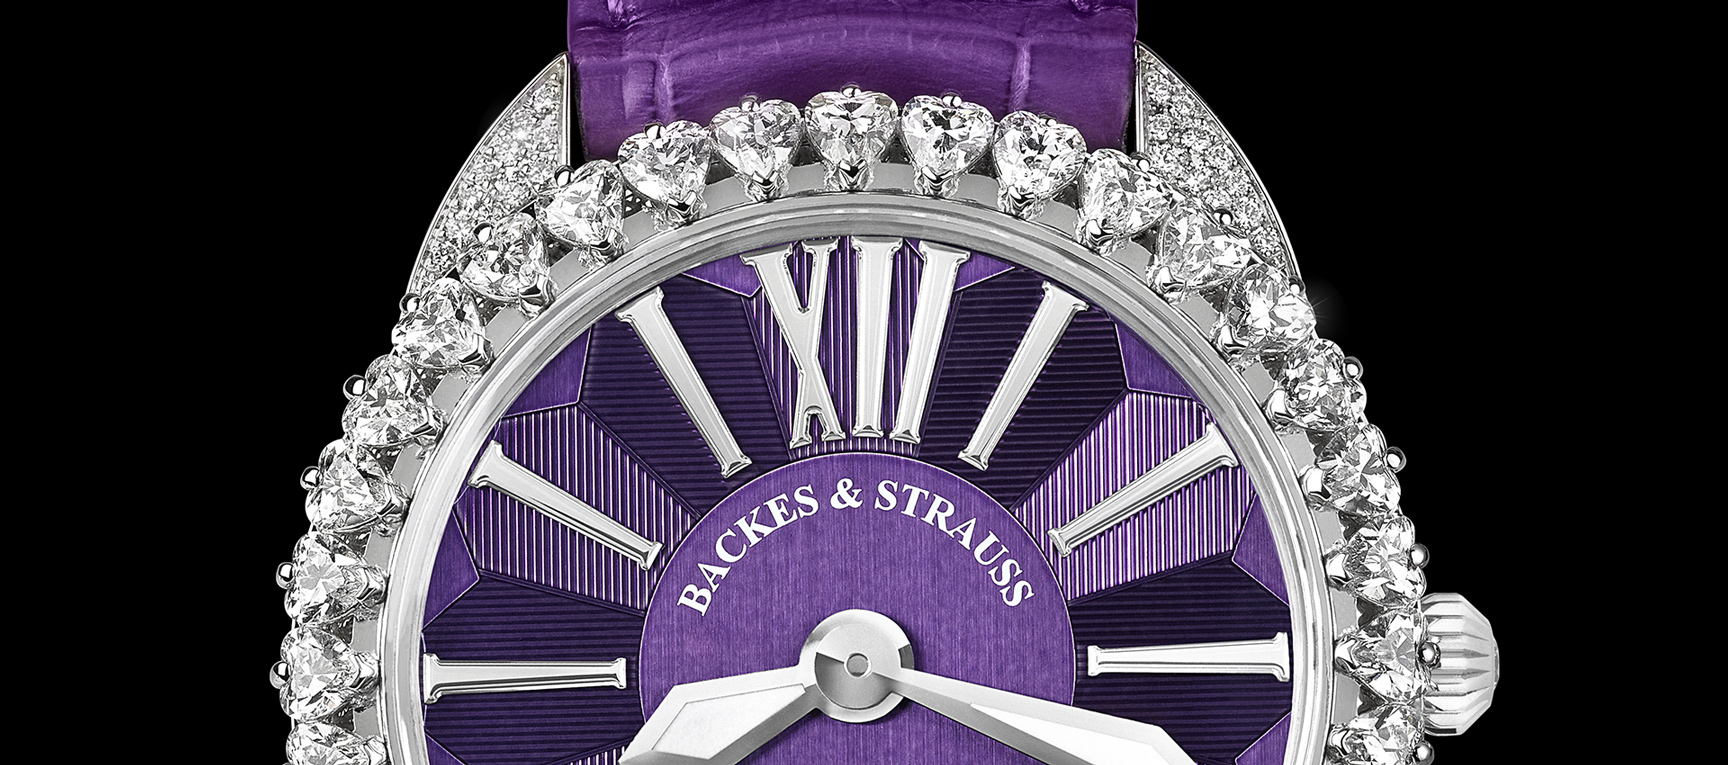 Backes & Strauss real diamond watches for men and woman